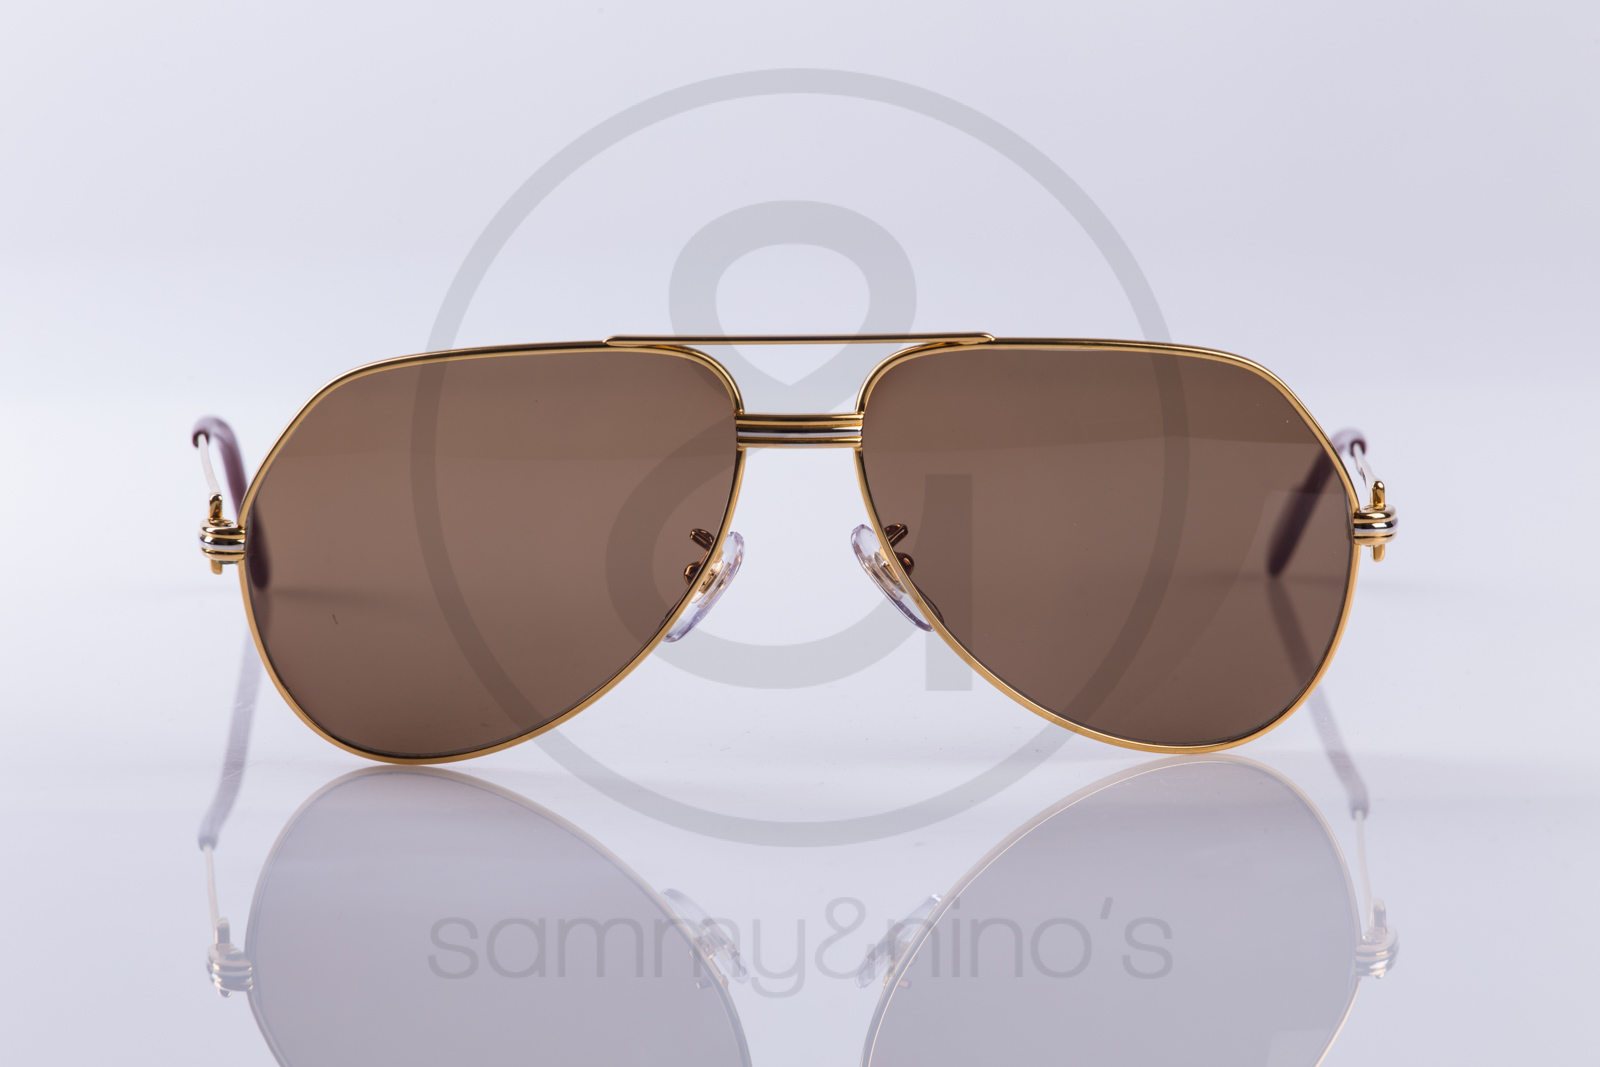 8e6e8b8cd3 Cartier Vendome Louis 59-14 – Sammy   Nino s Store